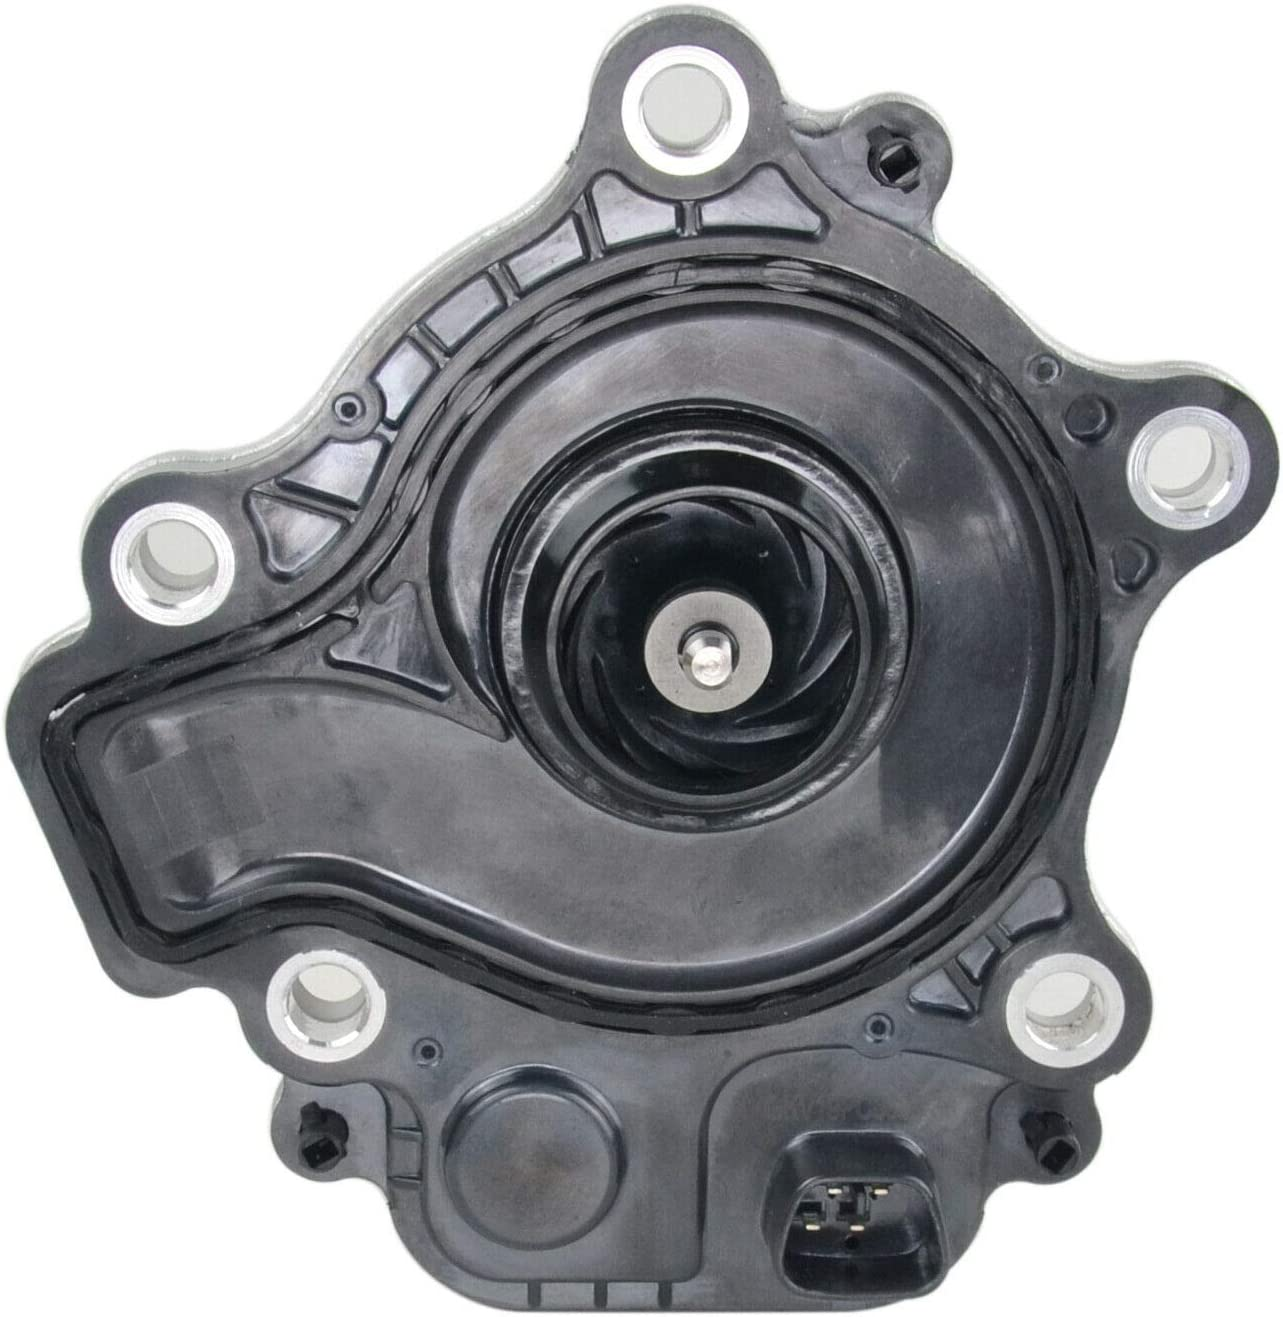 Part# 161A0-29015 161A0-39015 GELUOXI Electric Water Pump Assembly For 2010-15 Toyo ta Prius CT200h WPT-190